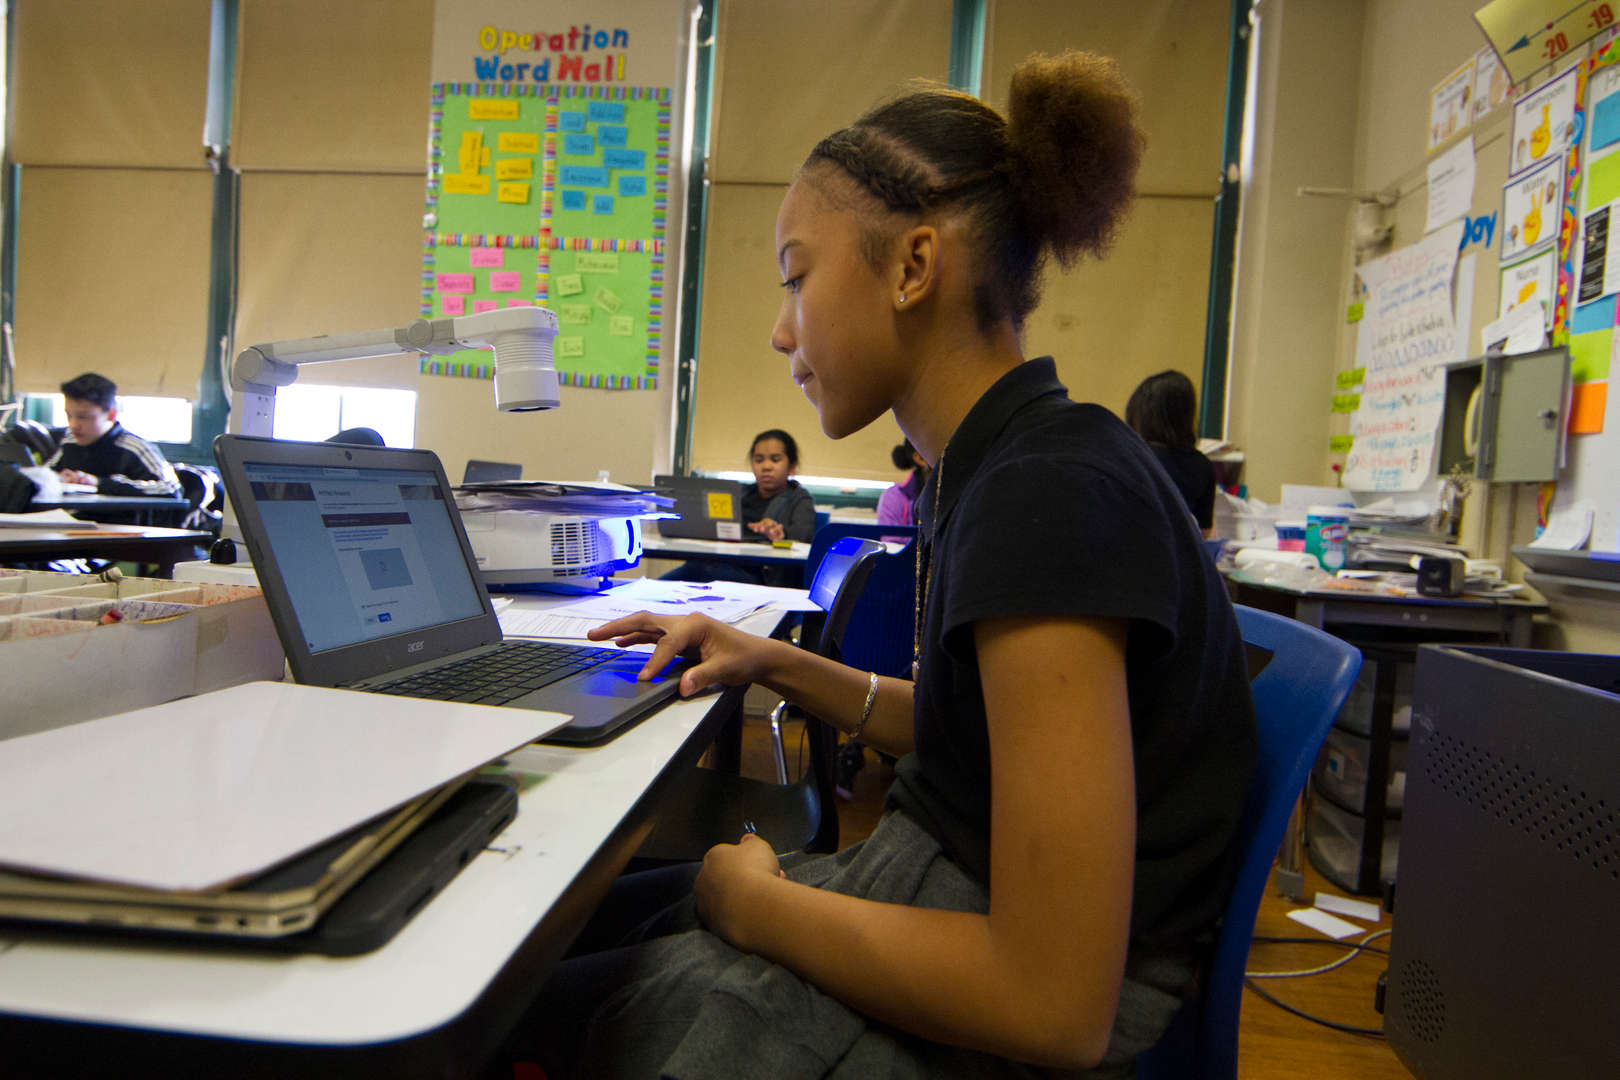 Student using laptop for project